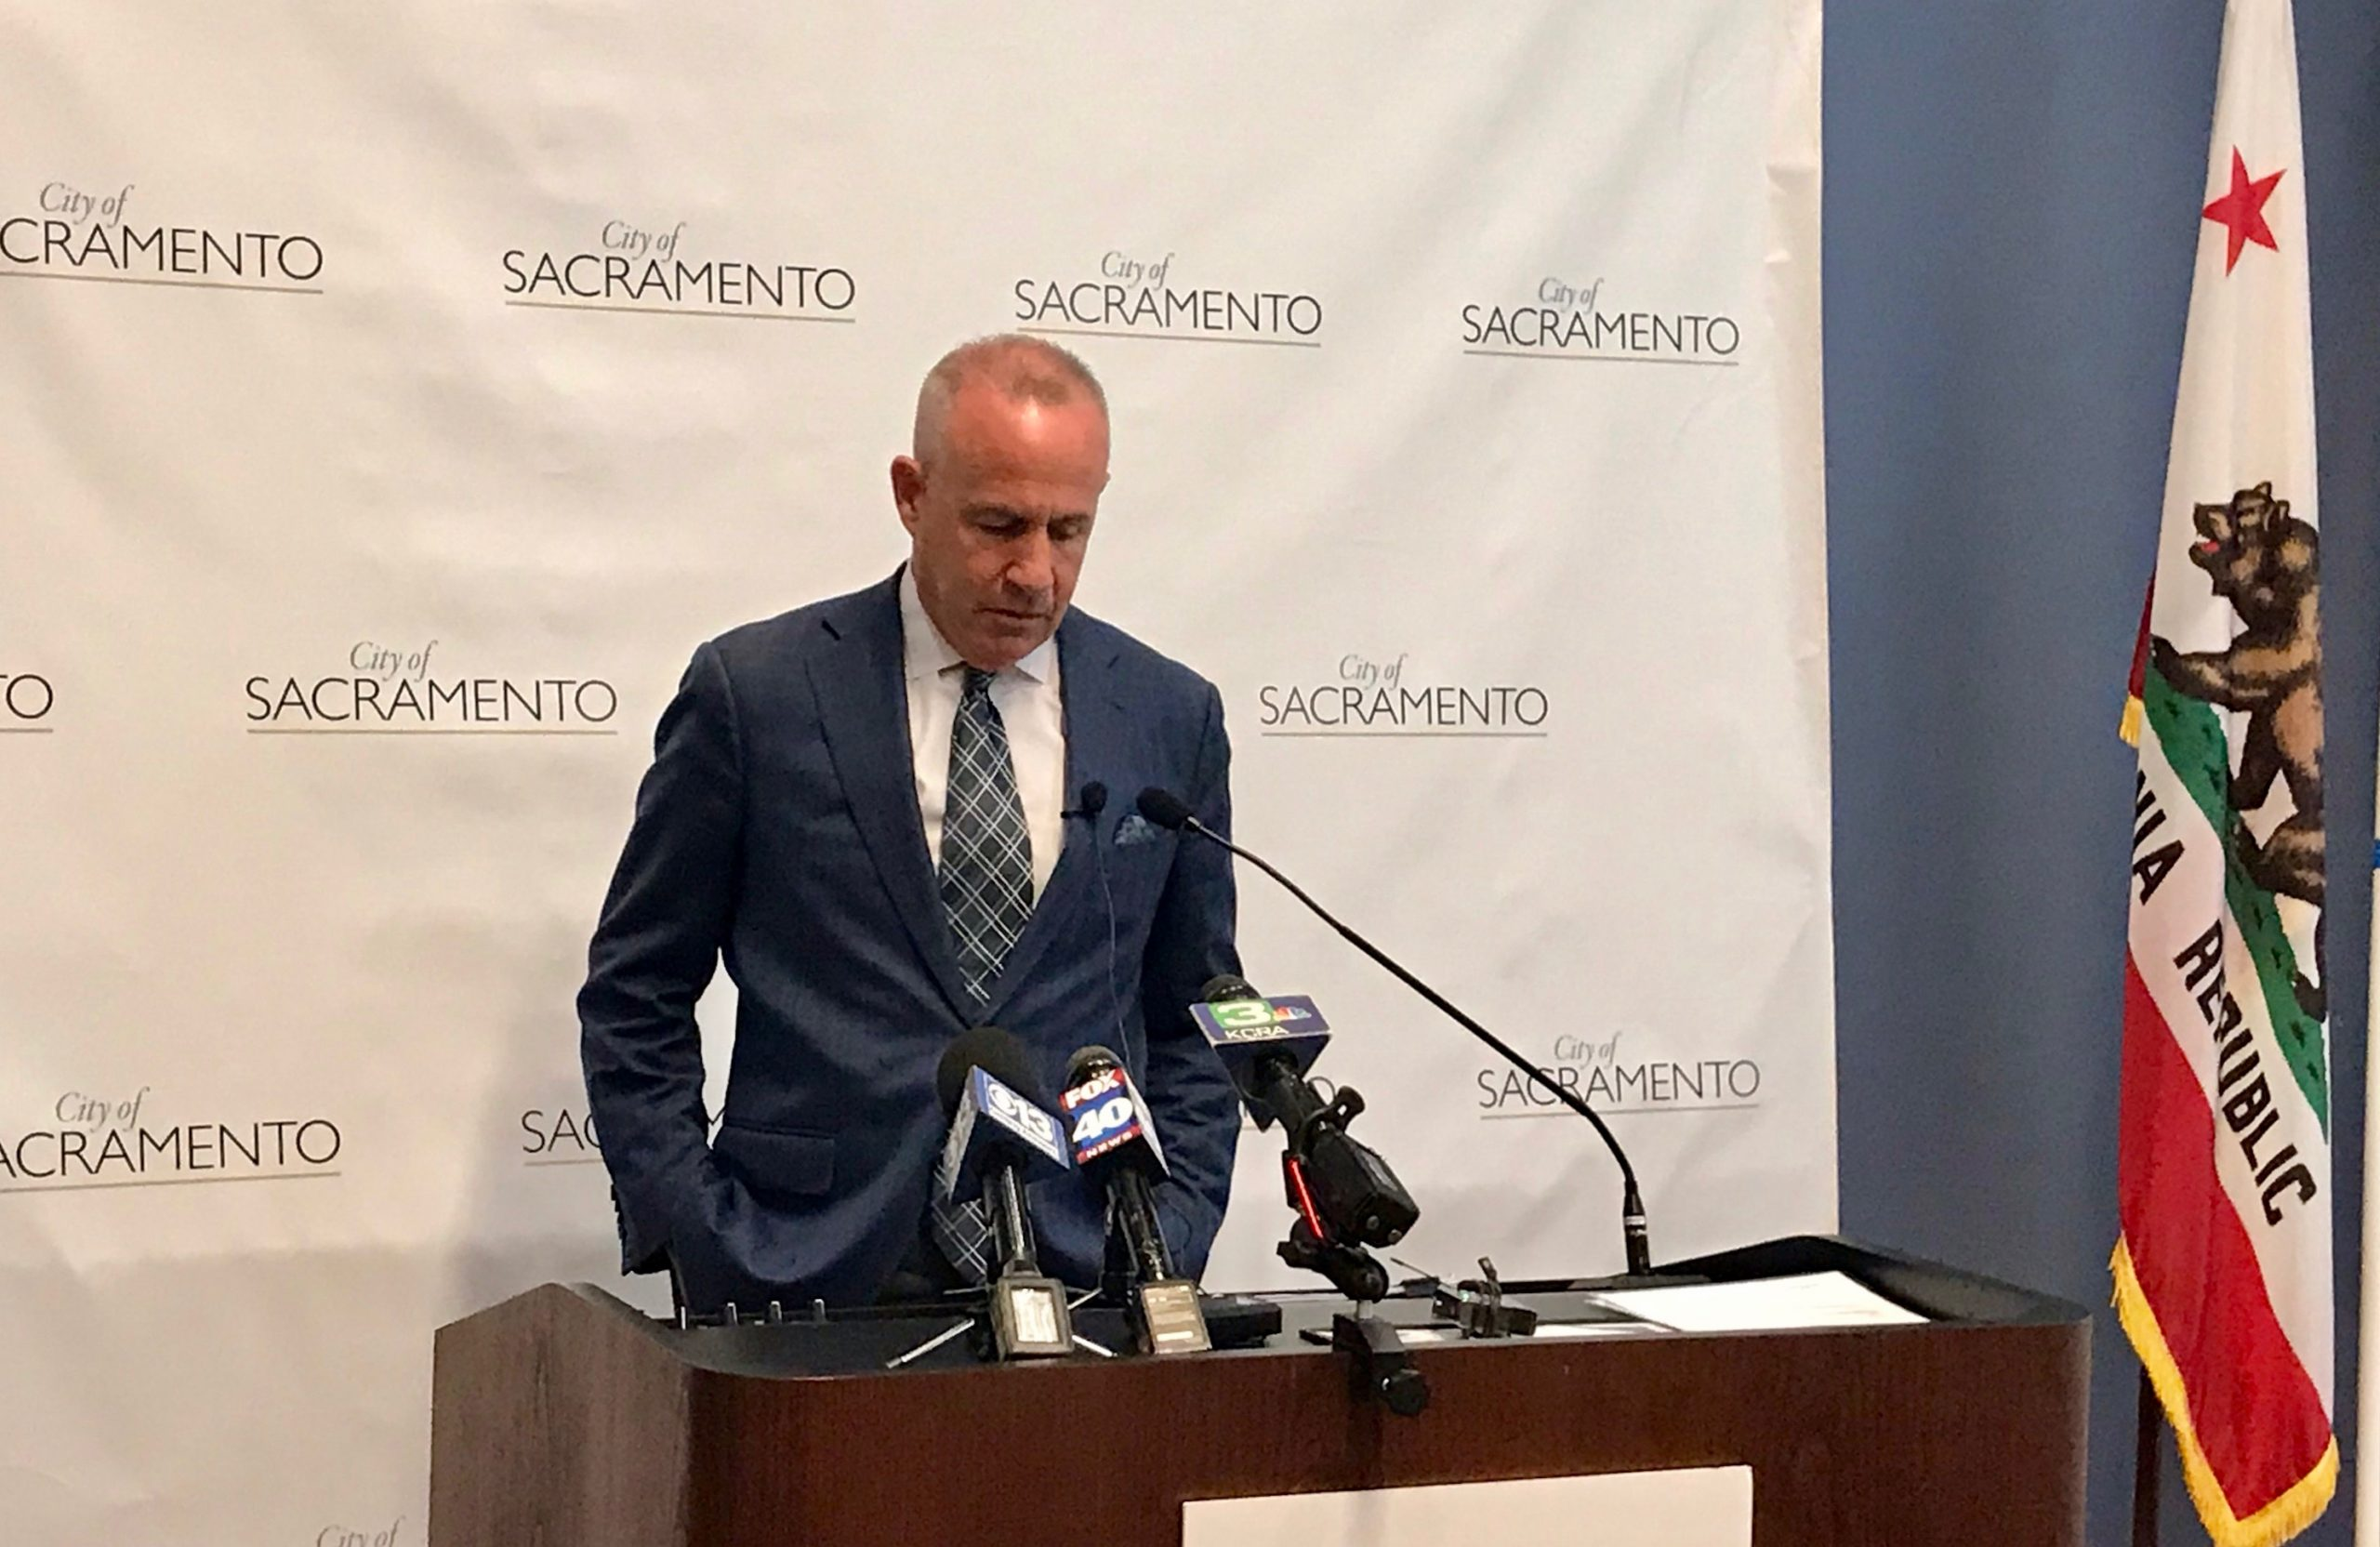 A strong leader doesn't need 'strong mayor' • Sacramento News & Review